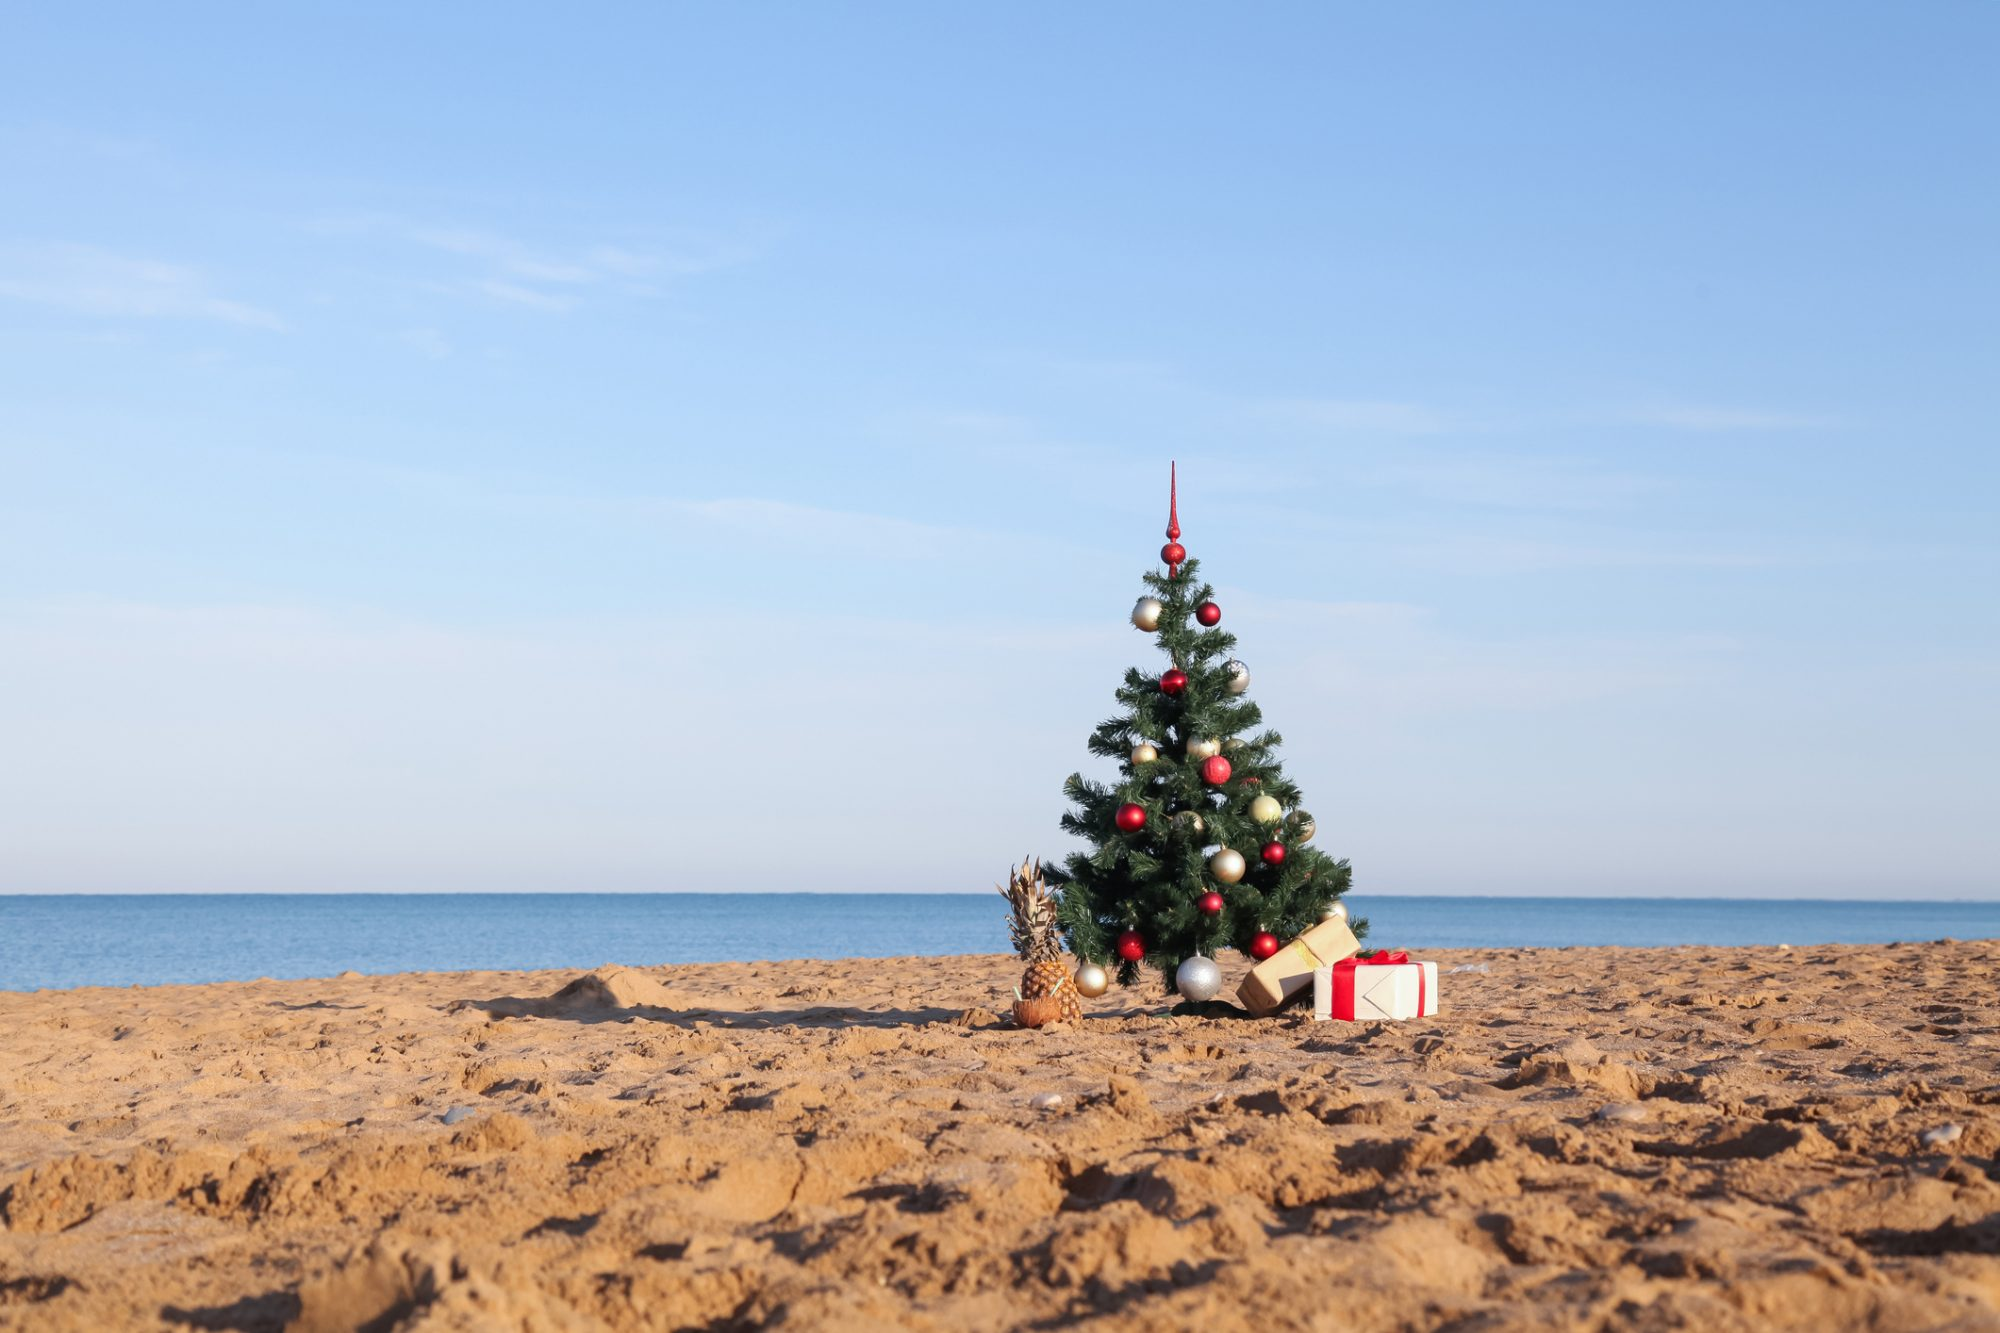 holiday spirit in hot climate